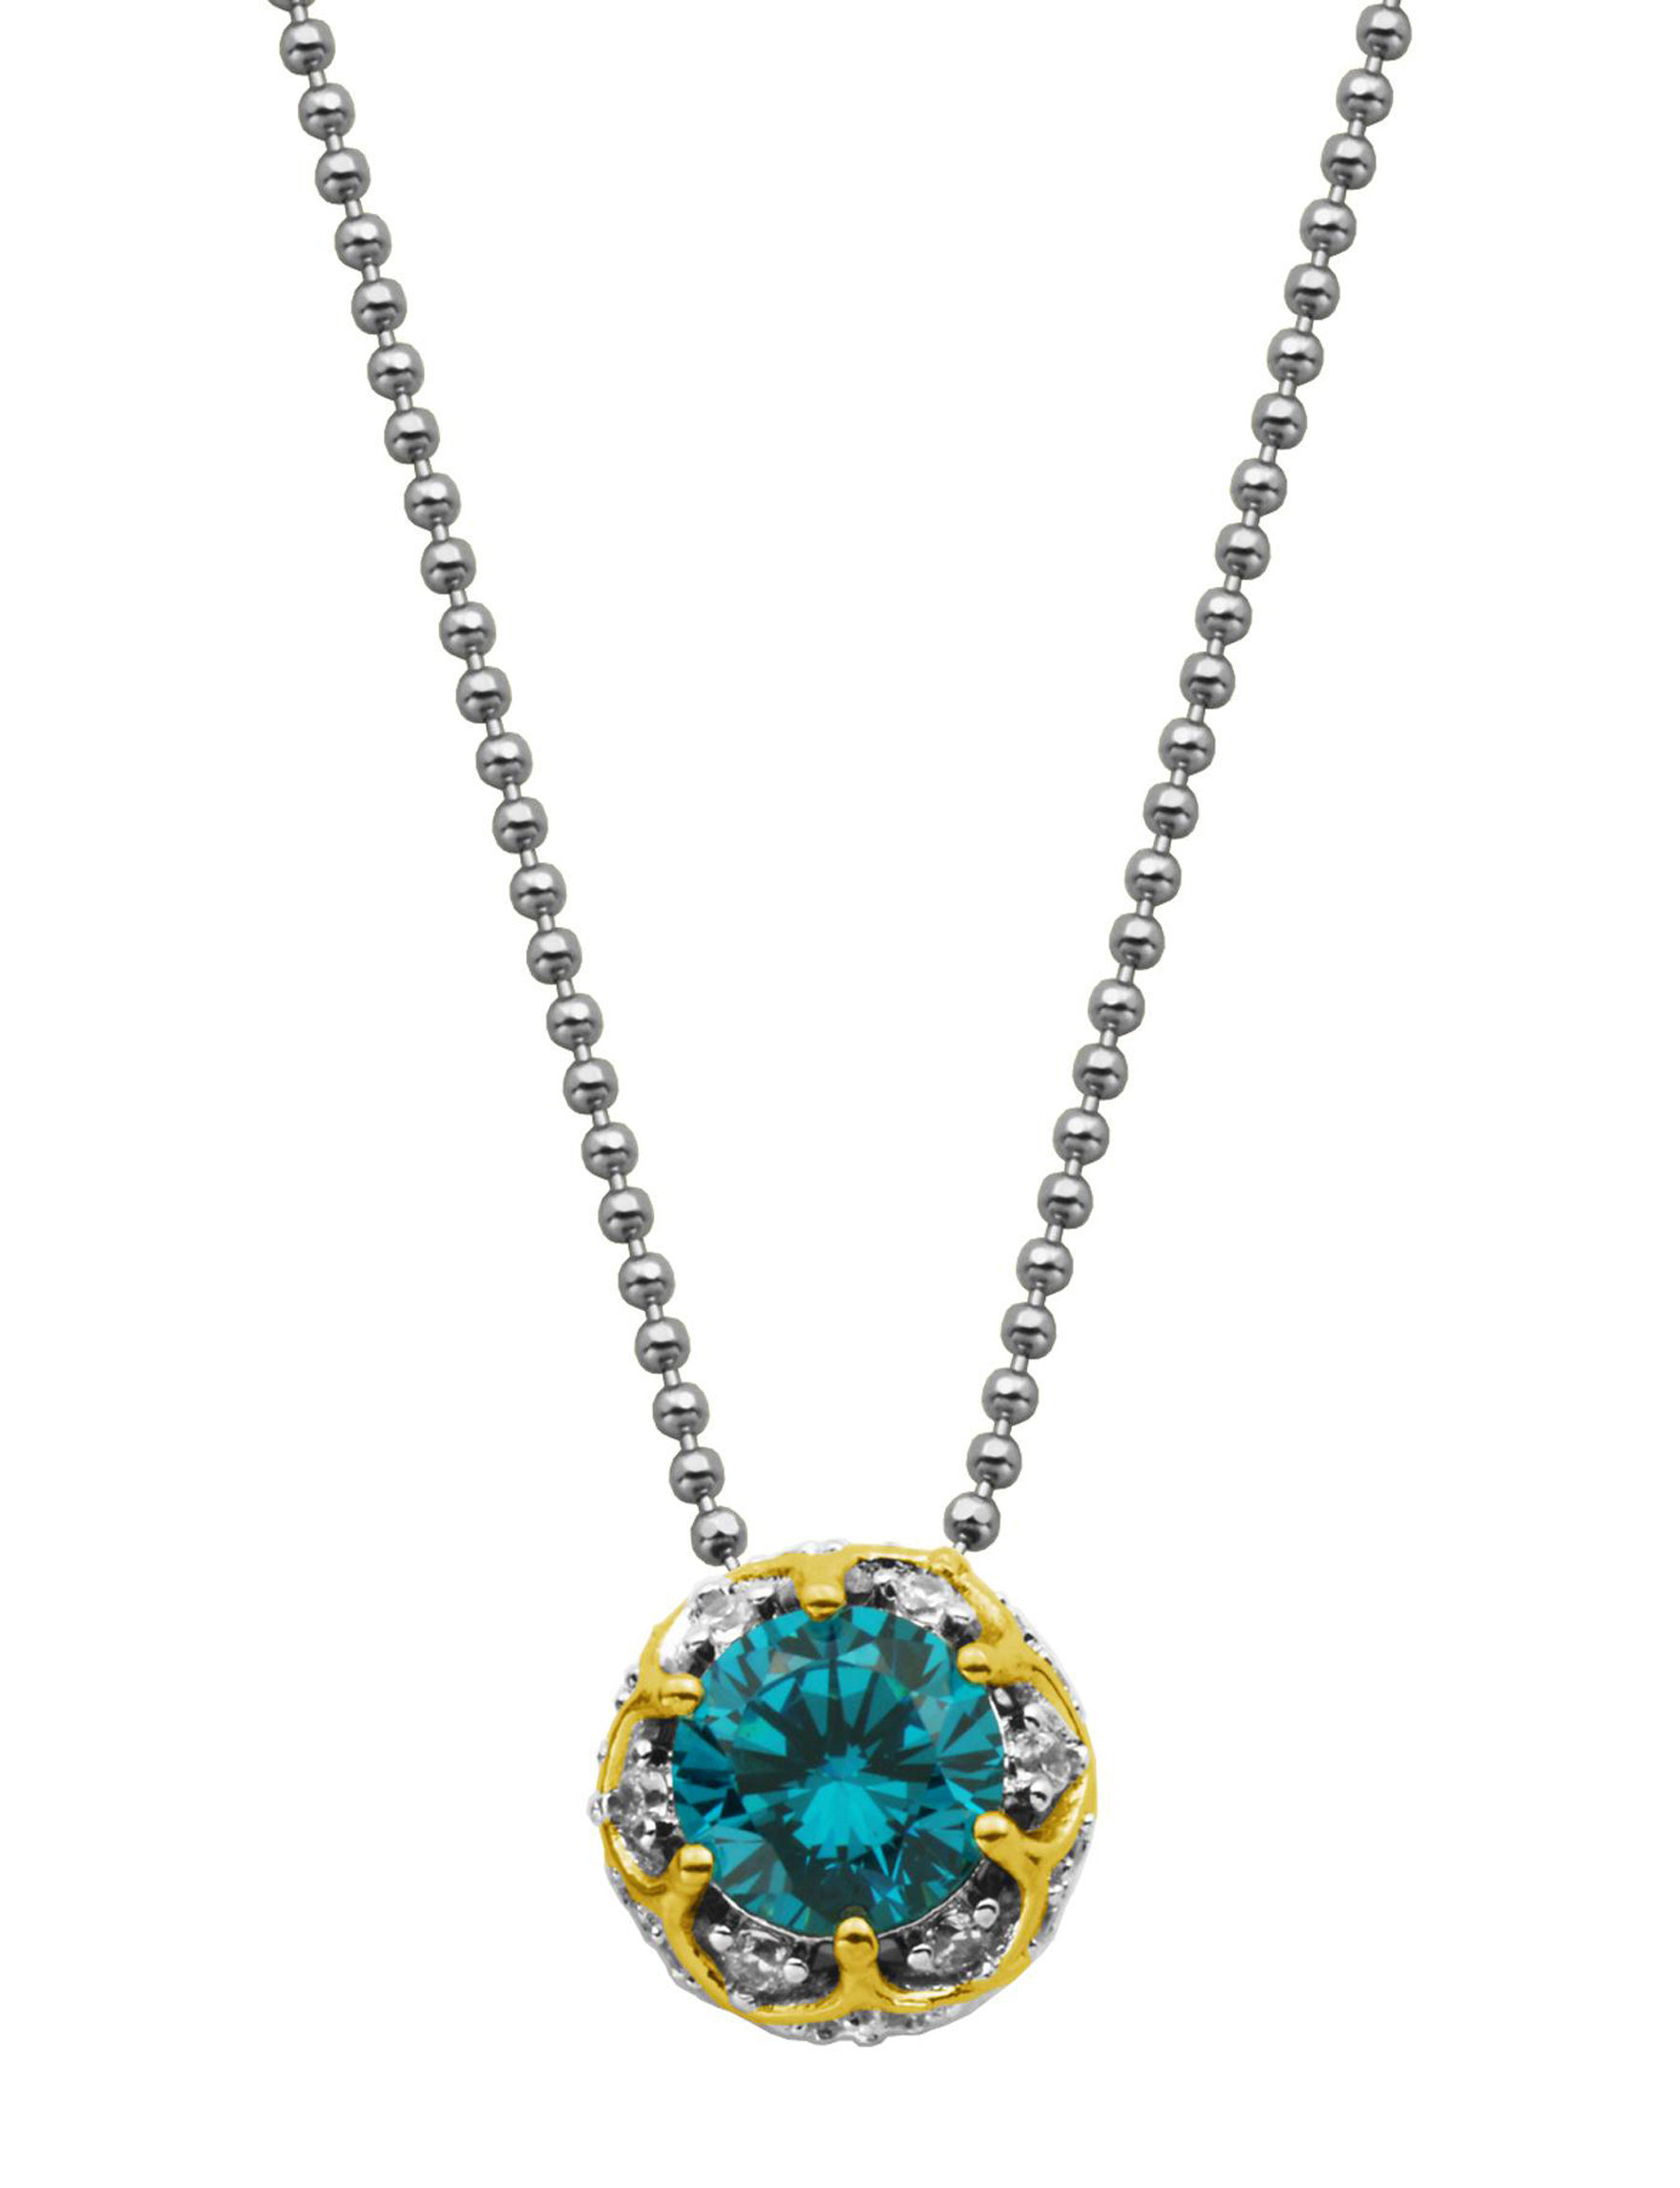 PAJ INC. Turquoise Necklaces & Pendants Fine Jewelry